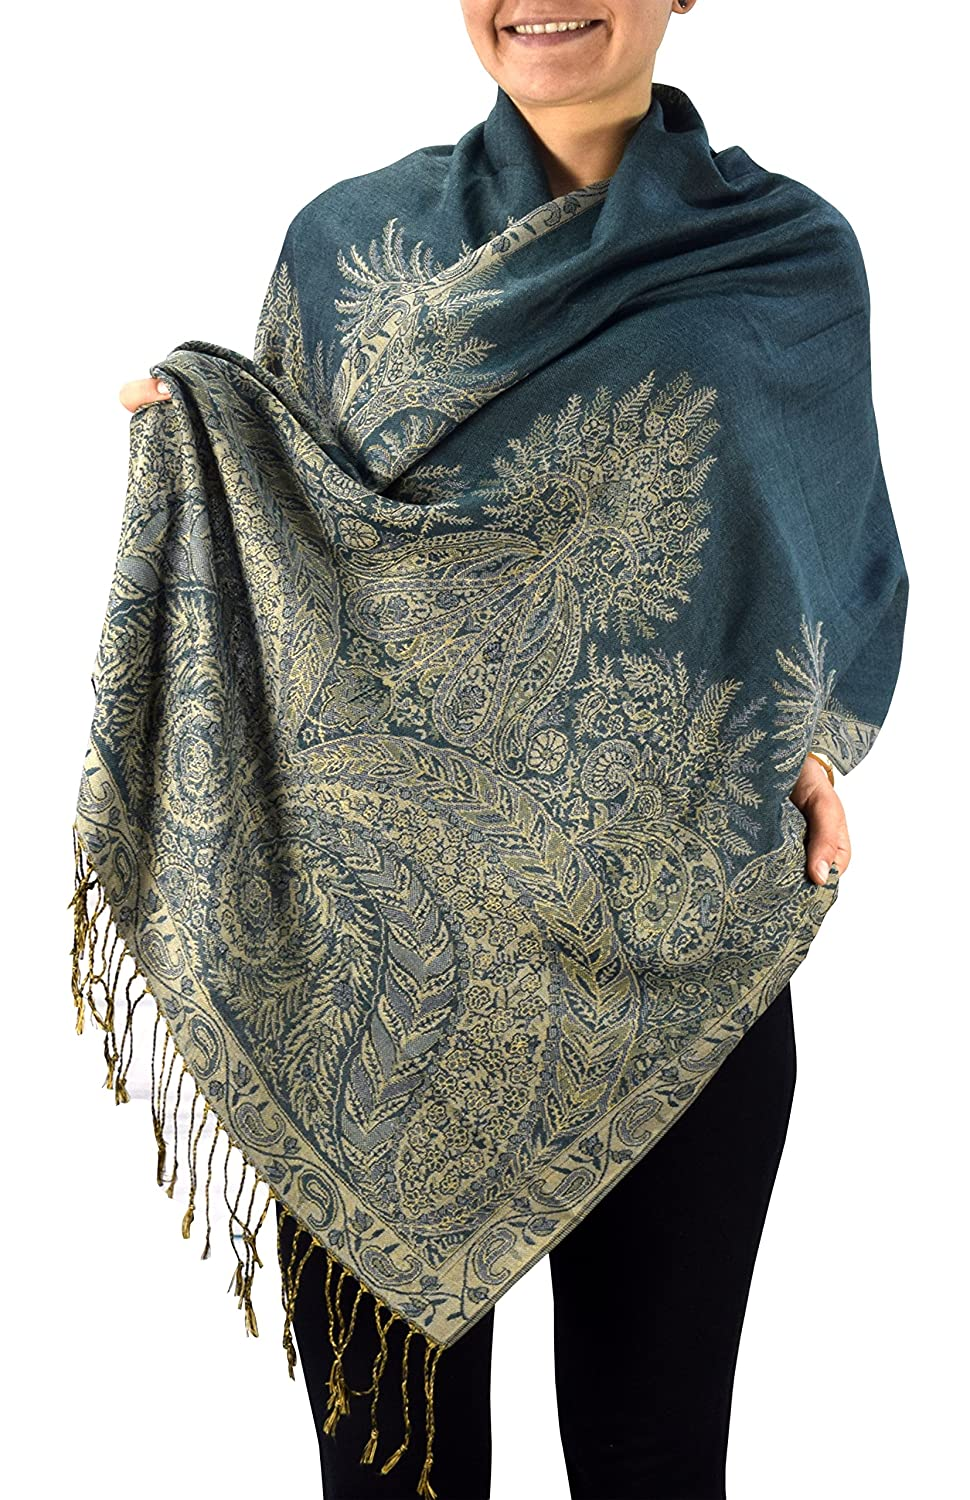 Peach Couture Soft Vintage Persian Paisley Printed Solid Pashmina Shawl Scarf (Hunter Green)